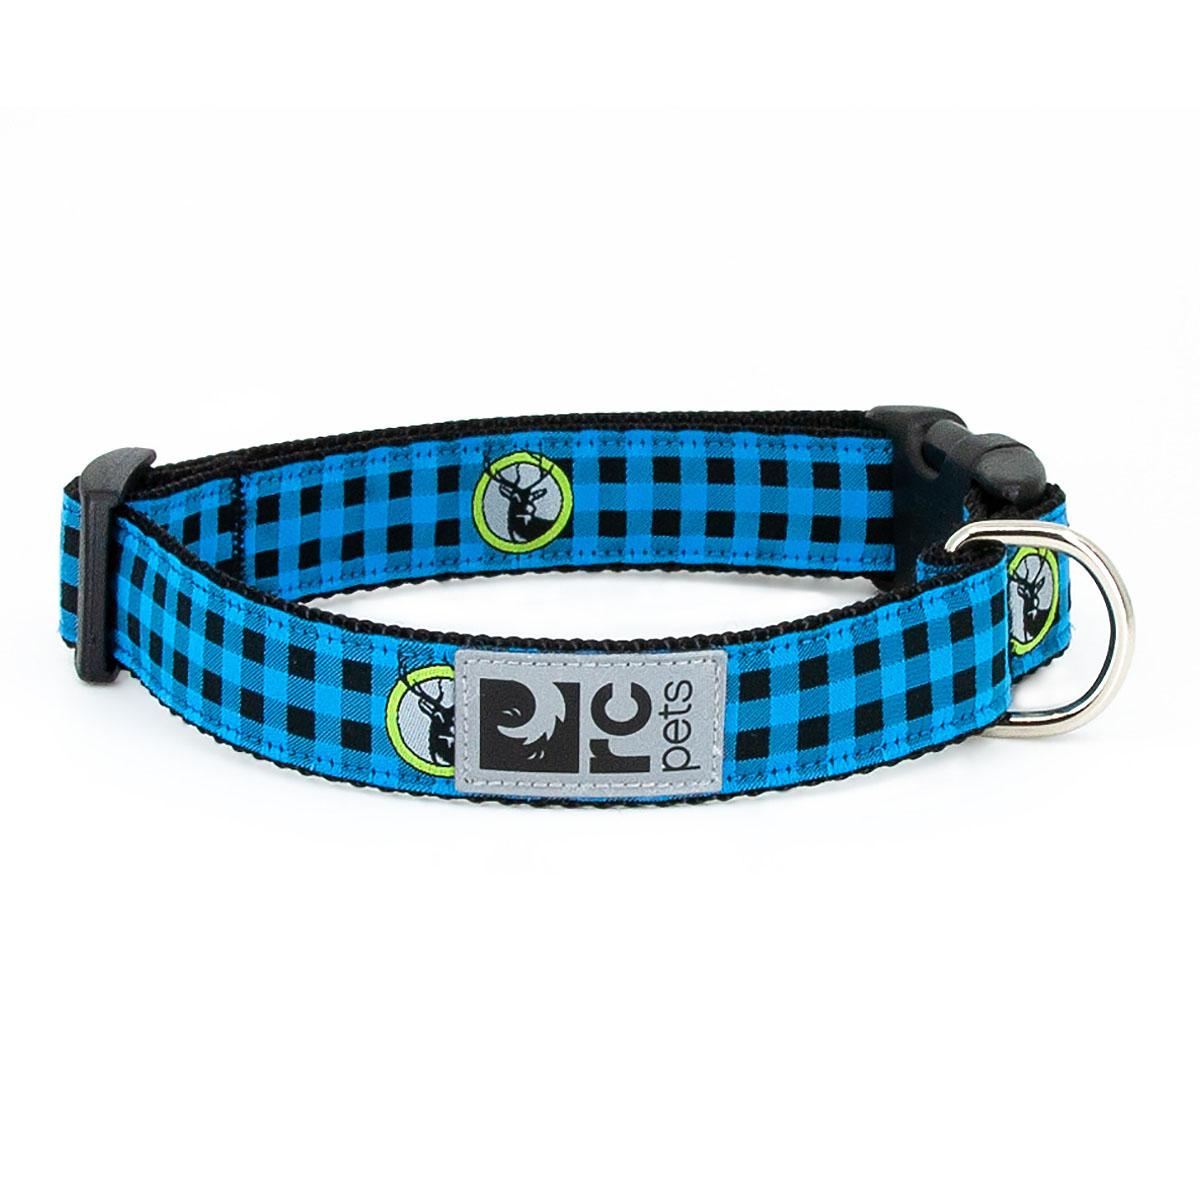 Buffalo Plaid Adjustable Dog Collar by RC Pets - Blue